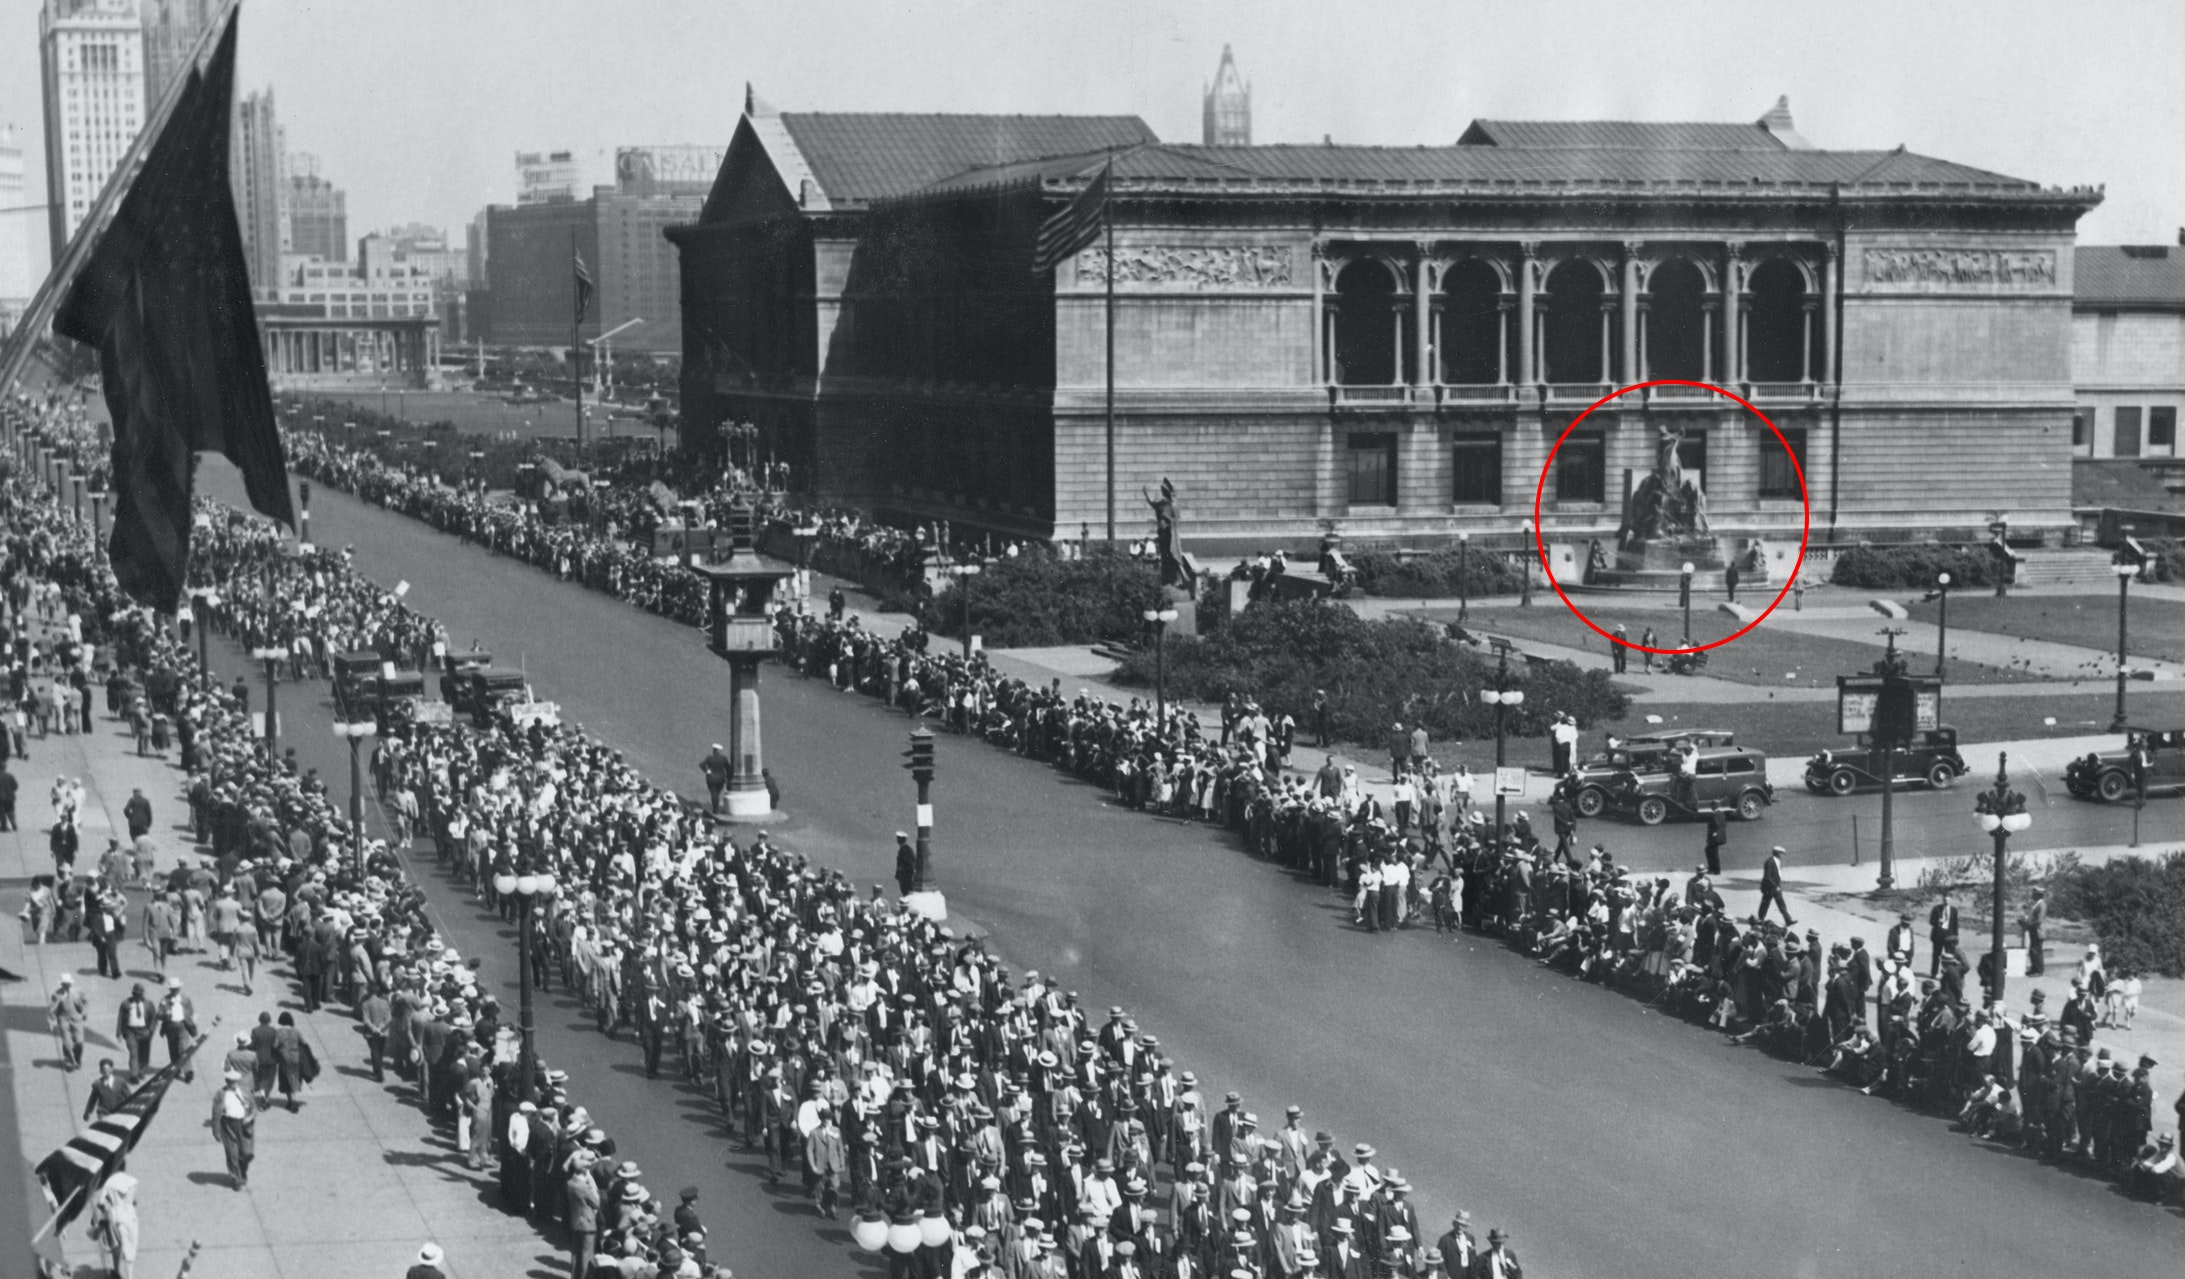 Early photo of Art Institute looking north up Michigan avenue during a parade